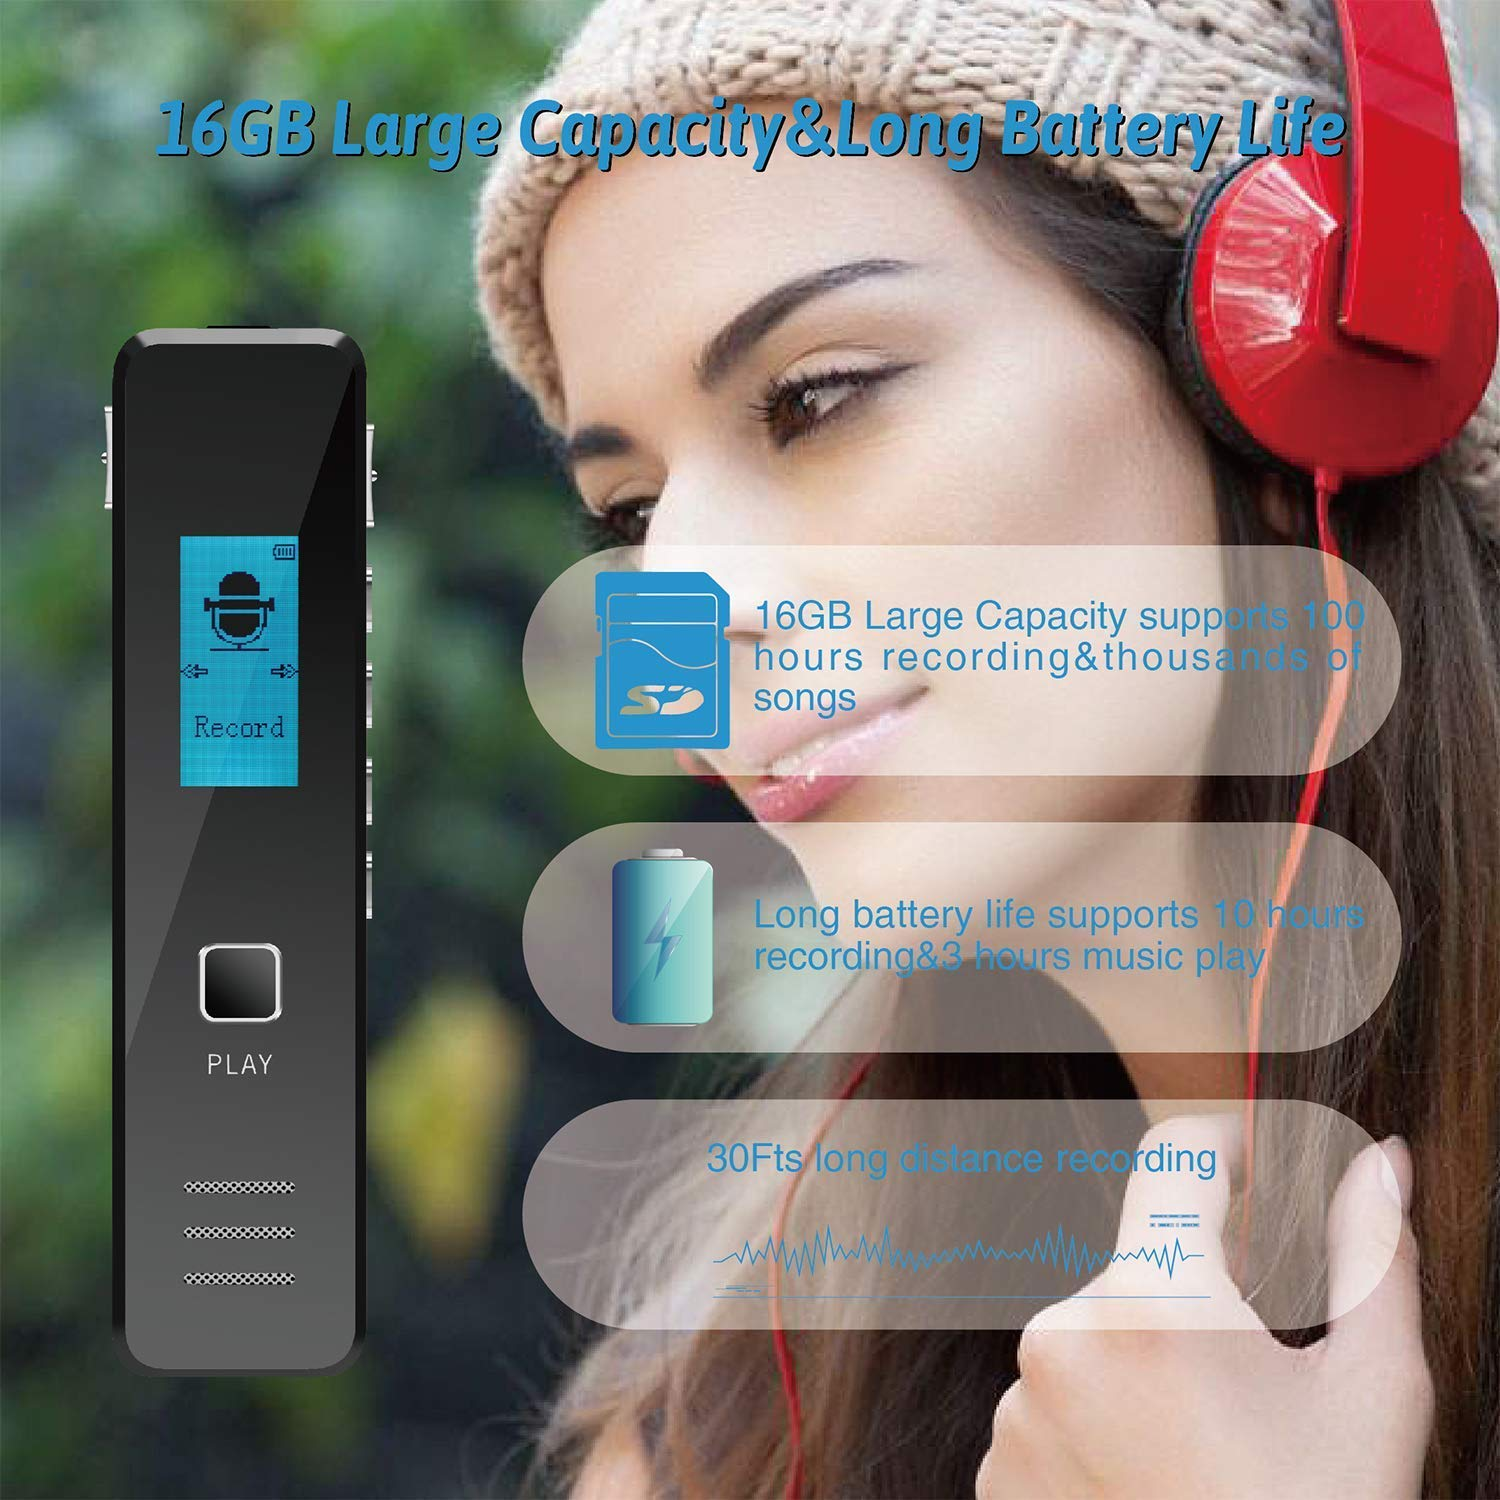 Digital Voice Recorder Mini Portable Voice 8GB 1536Kbps Dictaphone MP3 Player Rechargeable Recording Voice Activated//Double Microphone for Recording Interviews,Conversation,Meetings /…